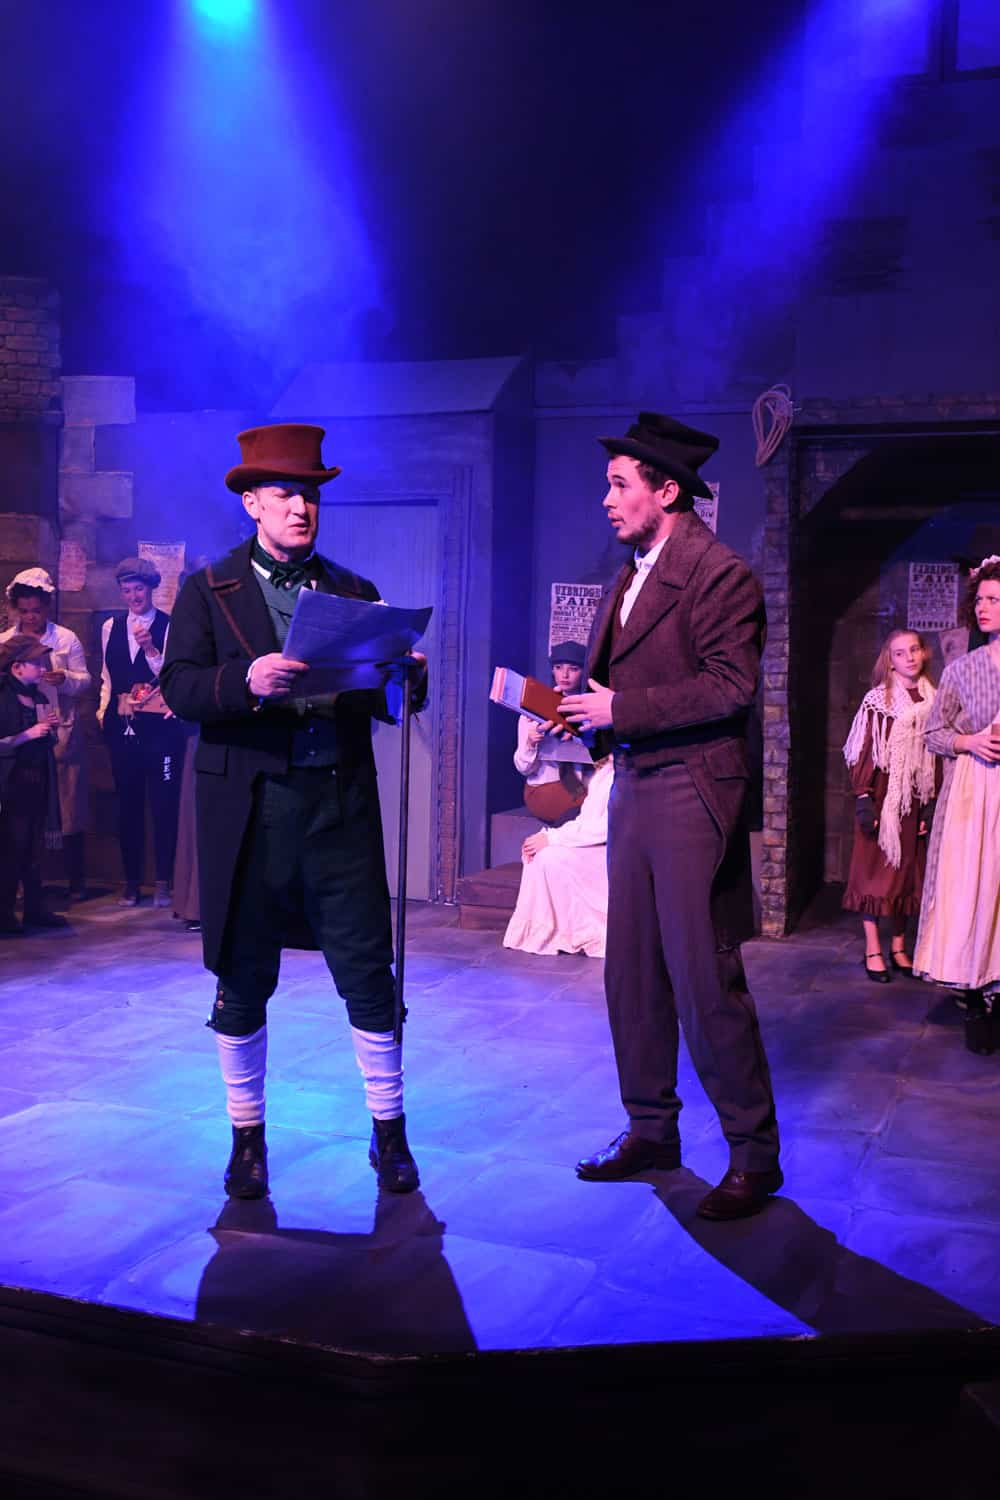 A Christmas Carol at LOST Theatre